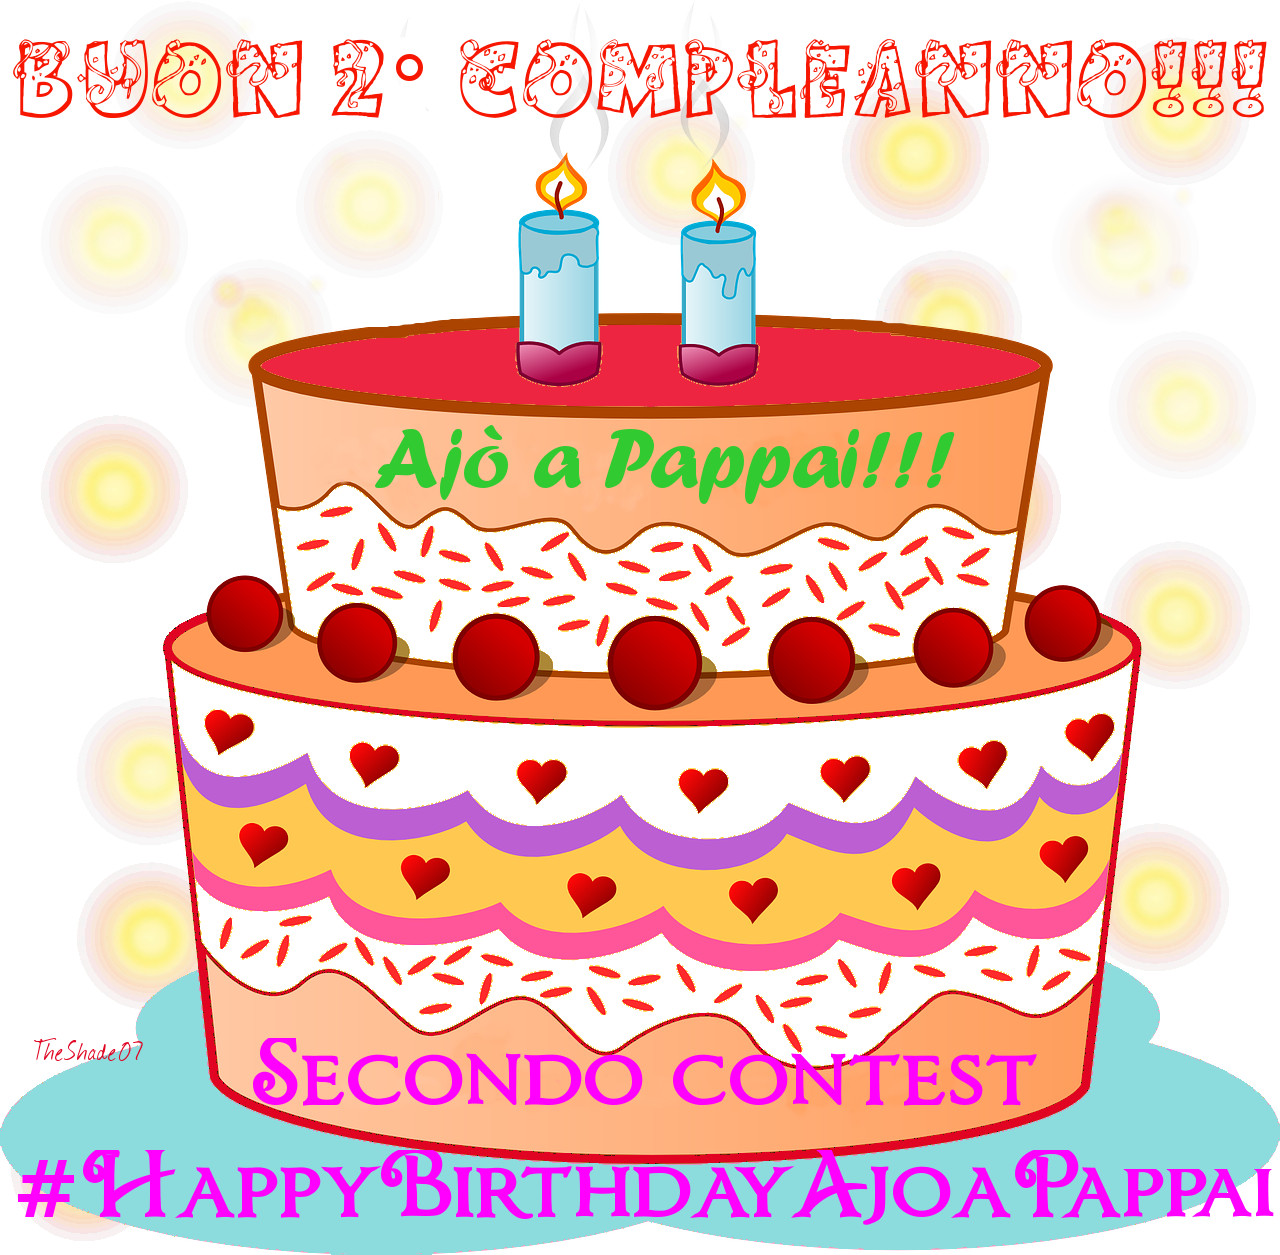 Immagine del logo del secondo contest Happy Birthday Ajò a Pappai!!!